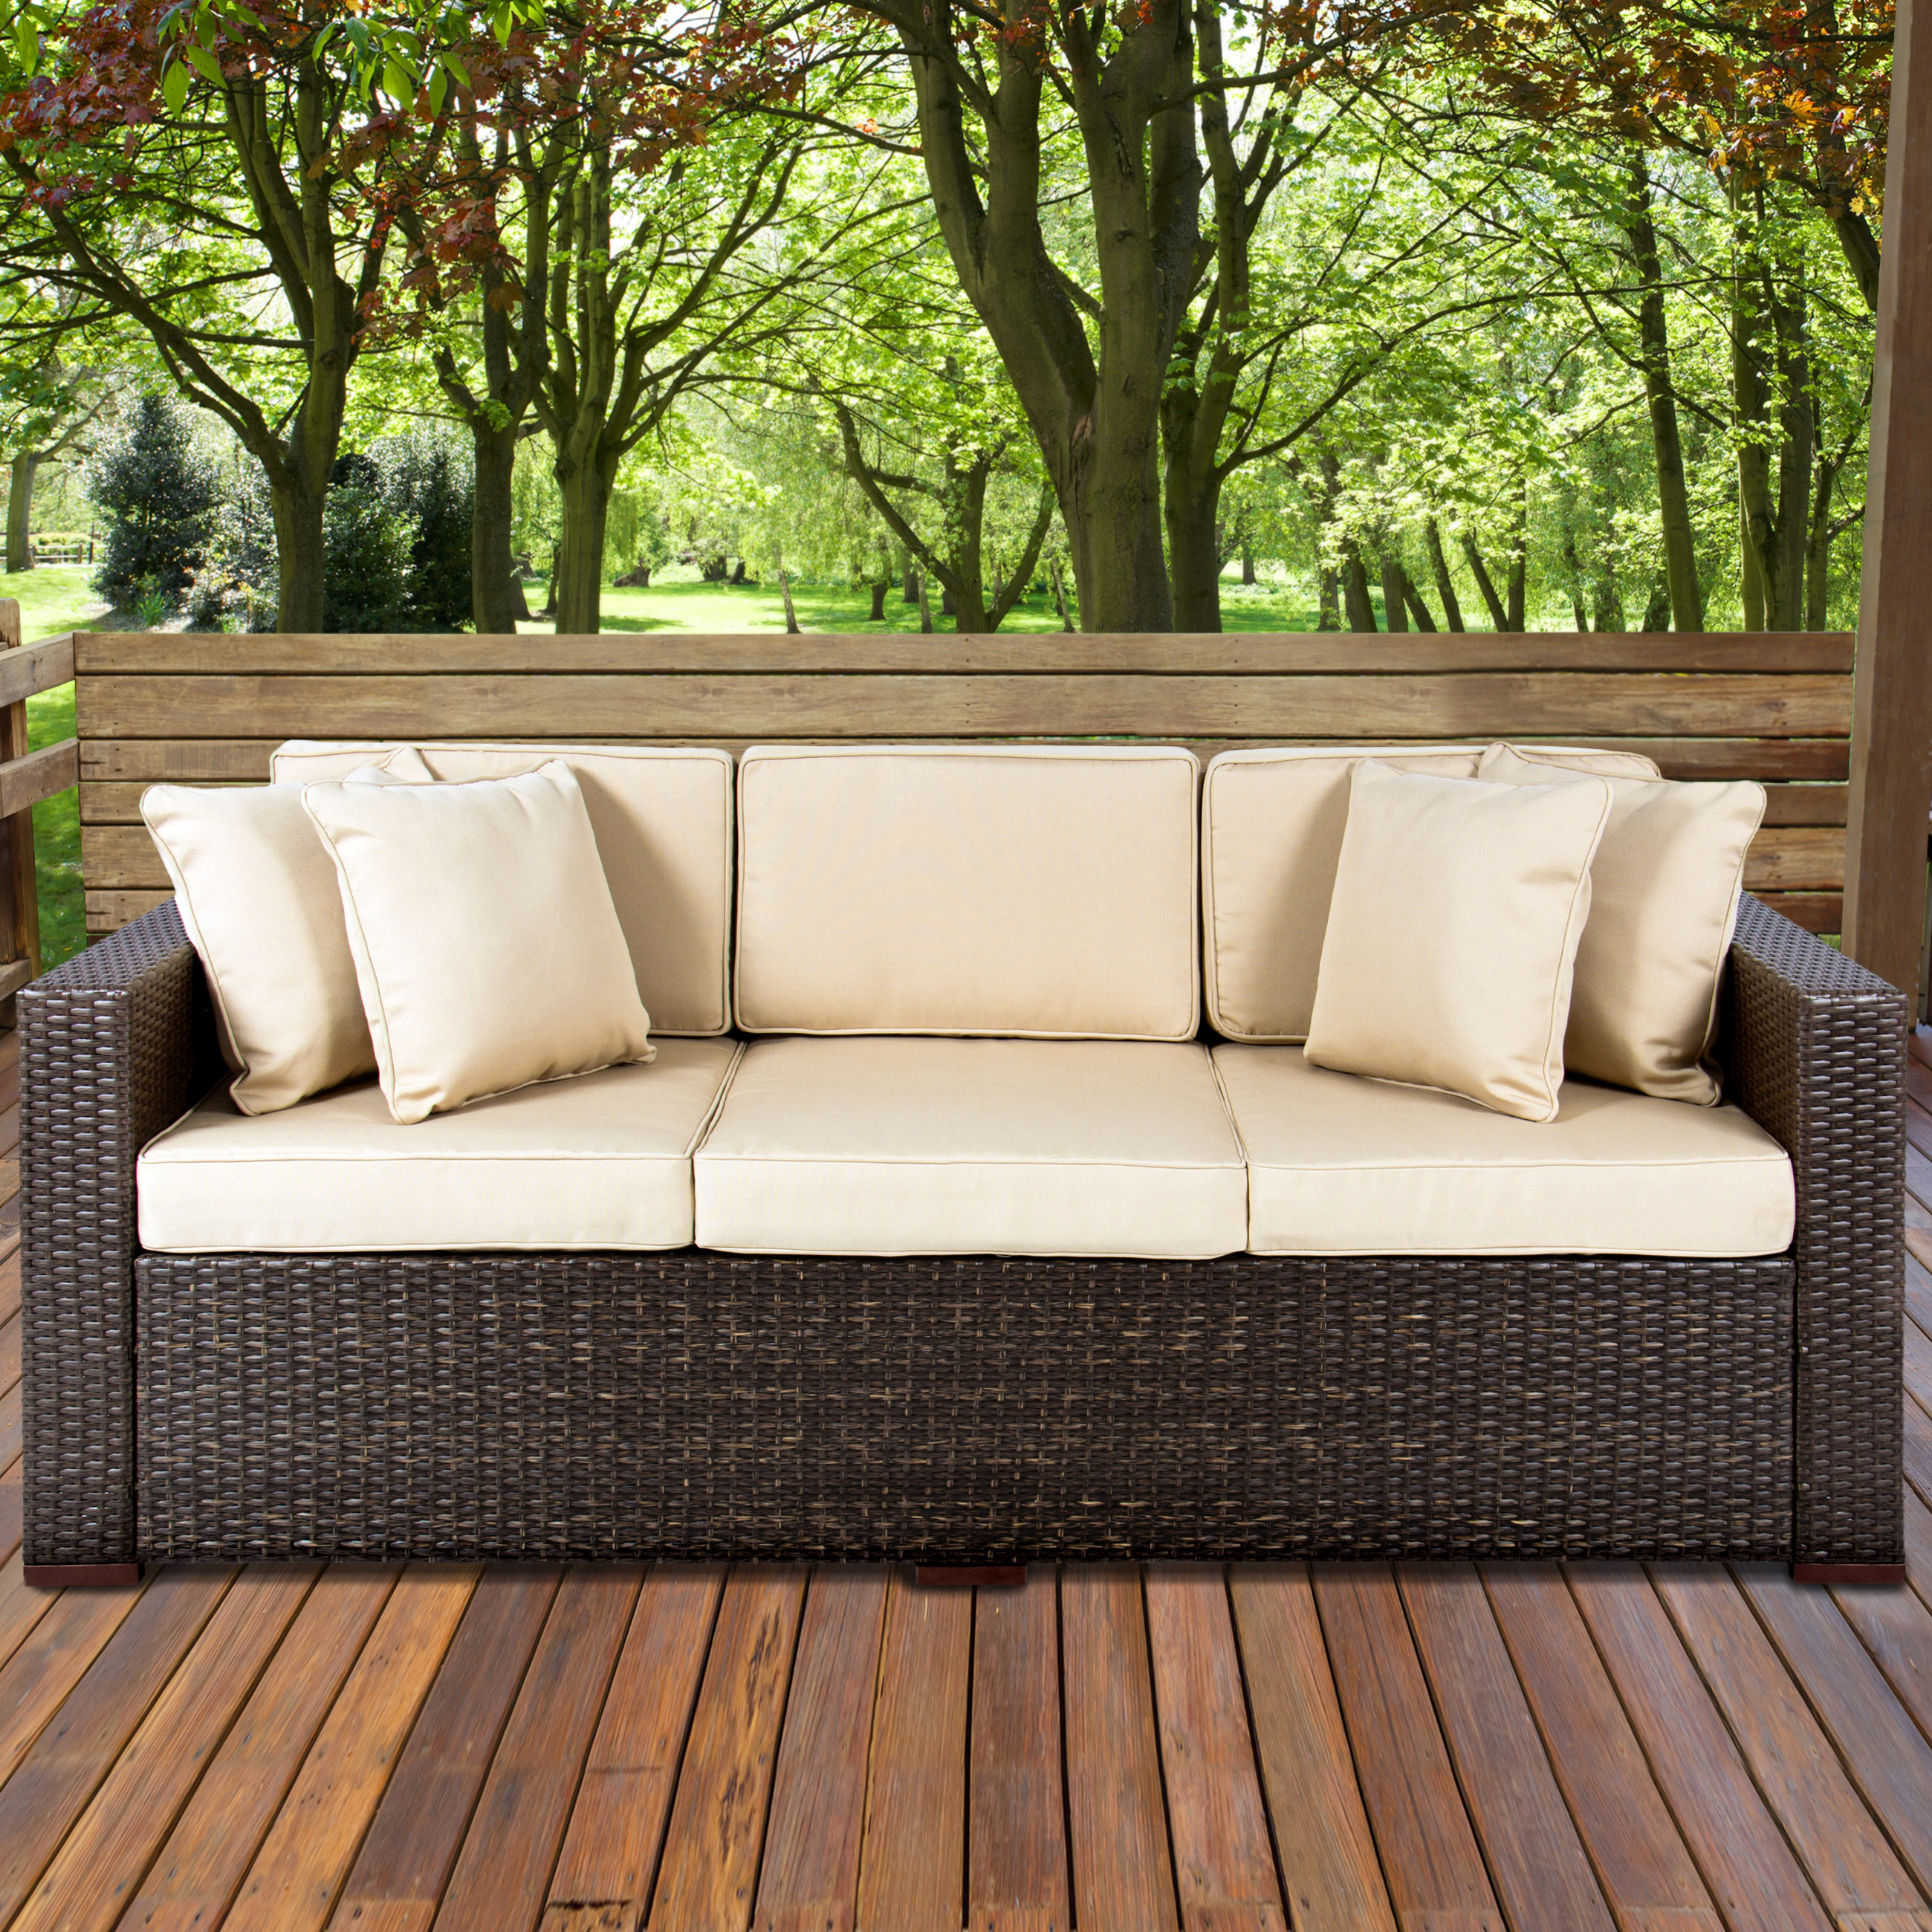 Outdoor Wicker Patio Furniture Sofa 3 Seater Luxury fort Brown